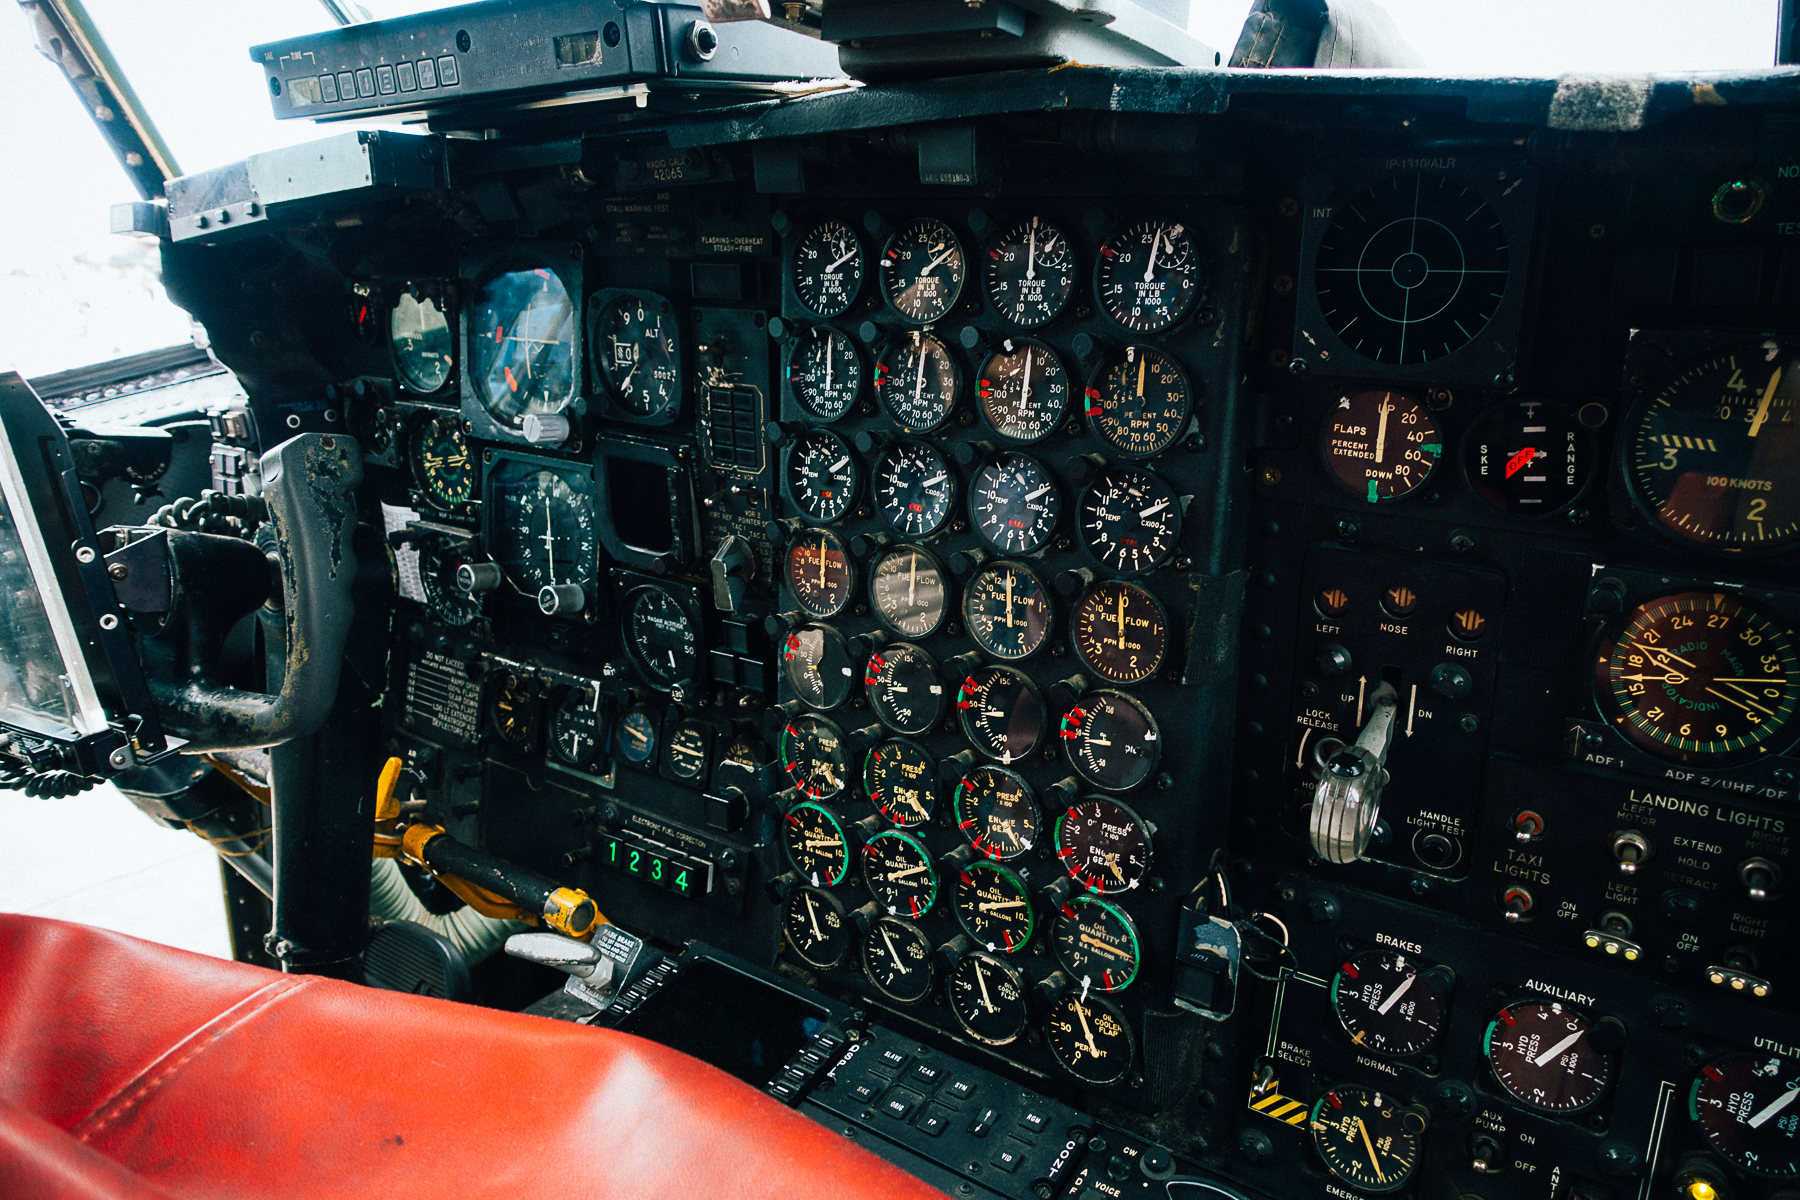 Lockheed C-130 Hercules Panel